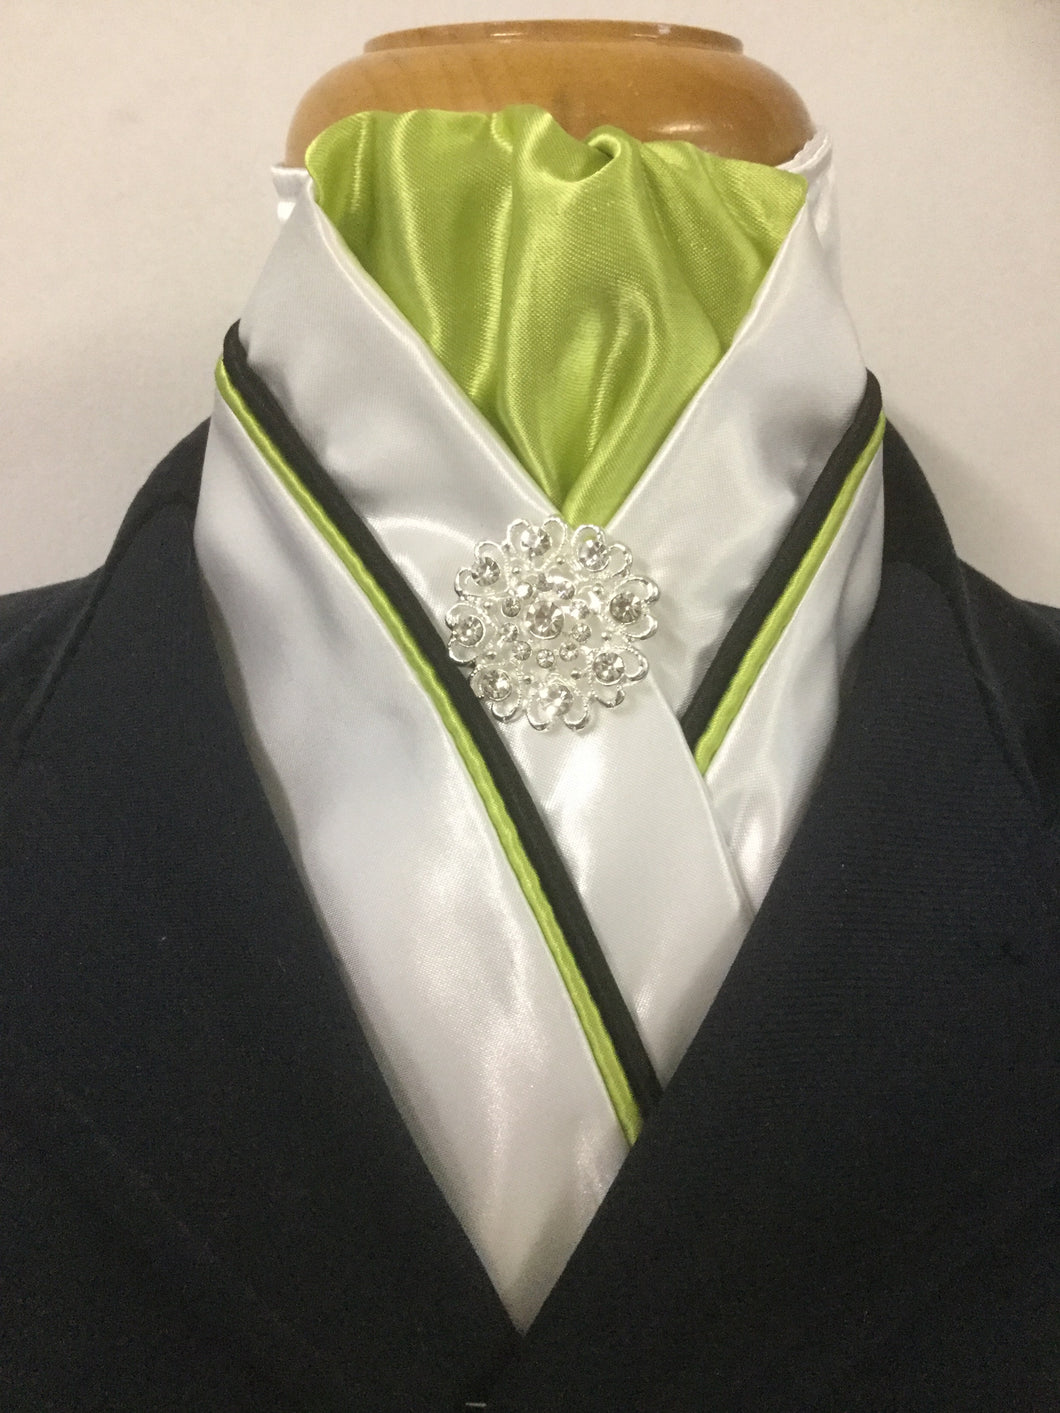 HHD White Satin Stock Tie Lime Green, Navy Black Piping Other Colours Available